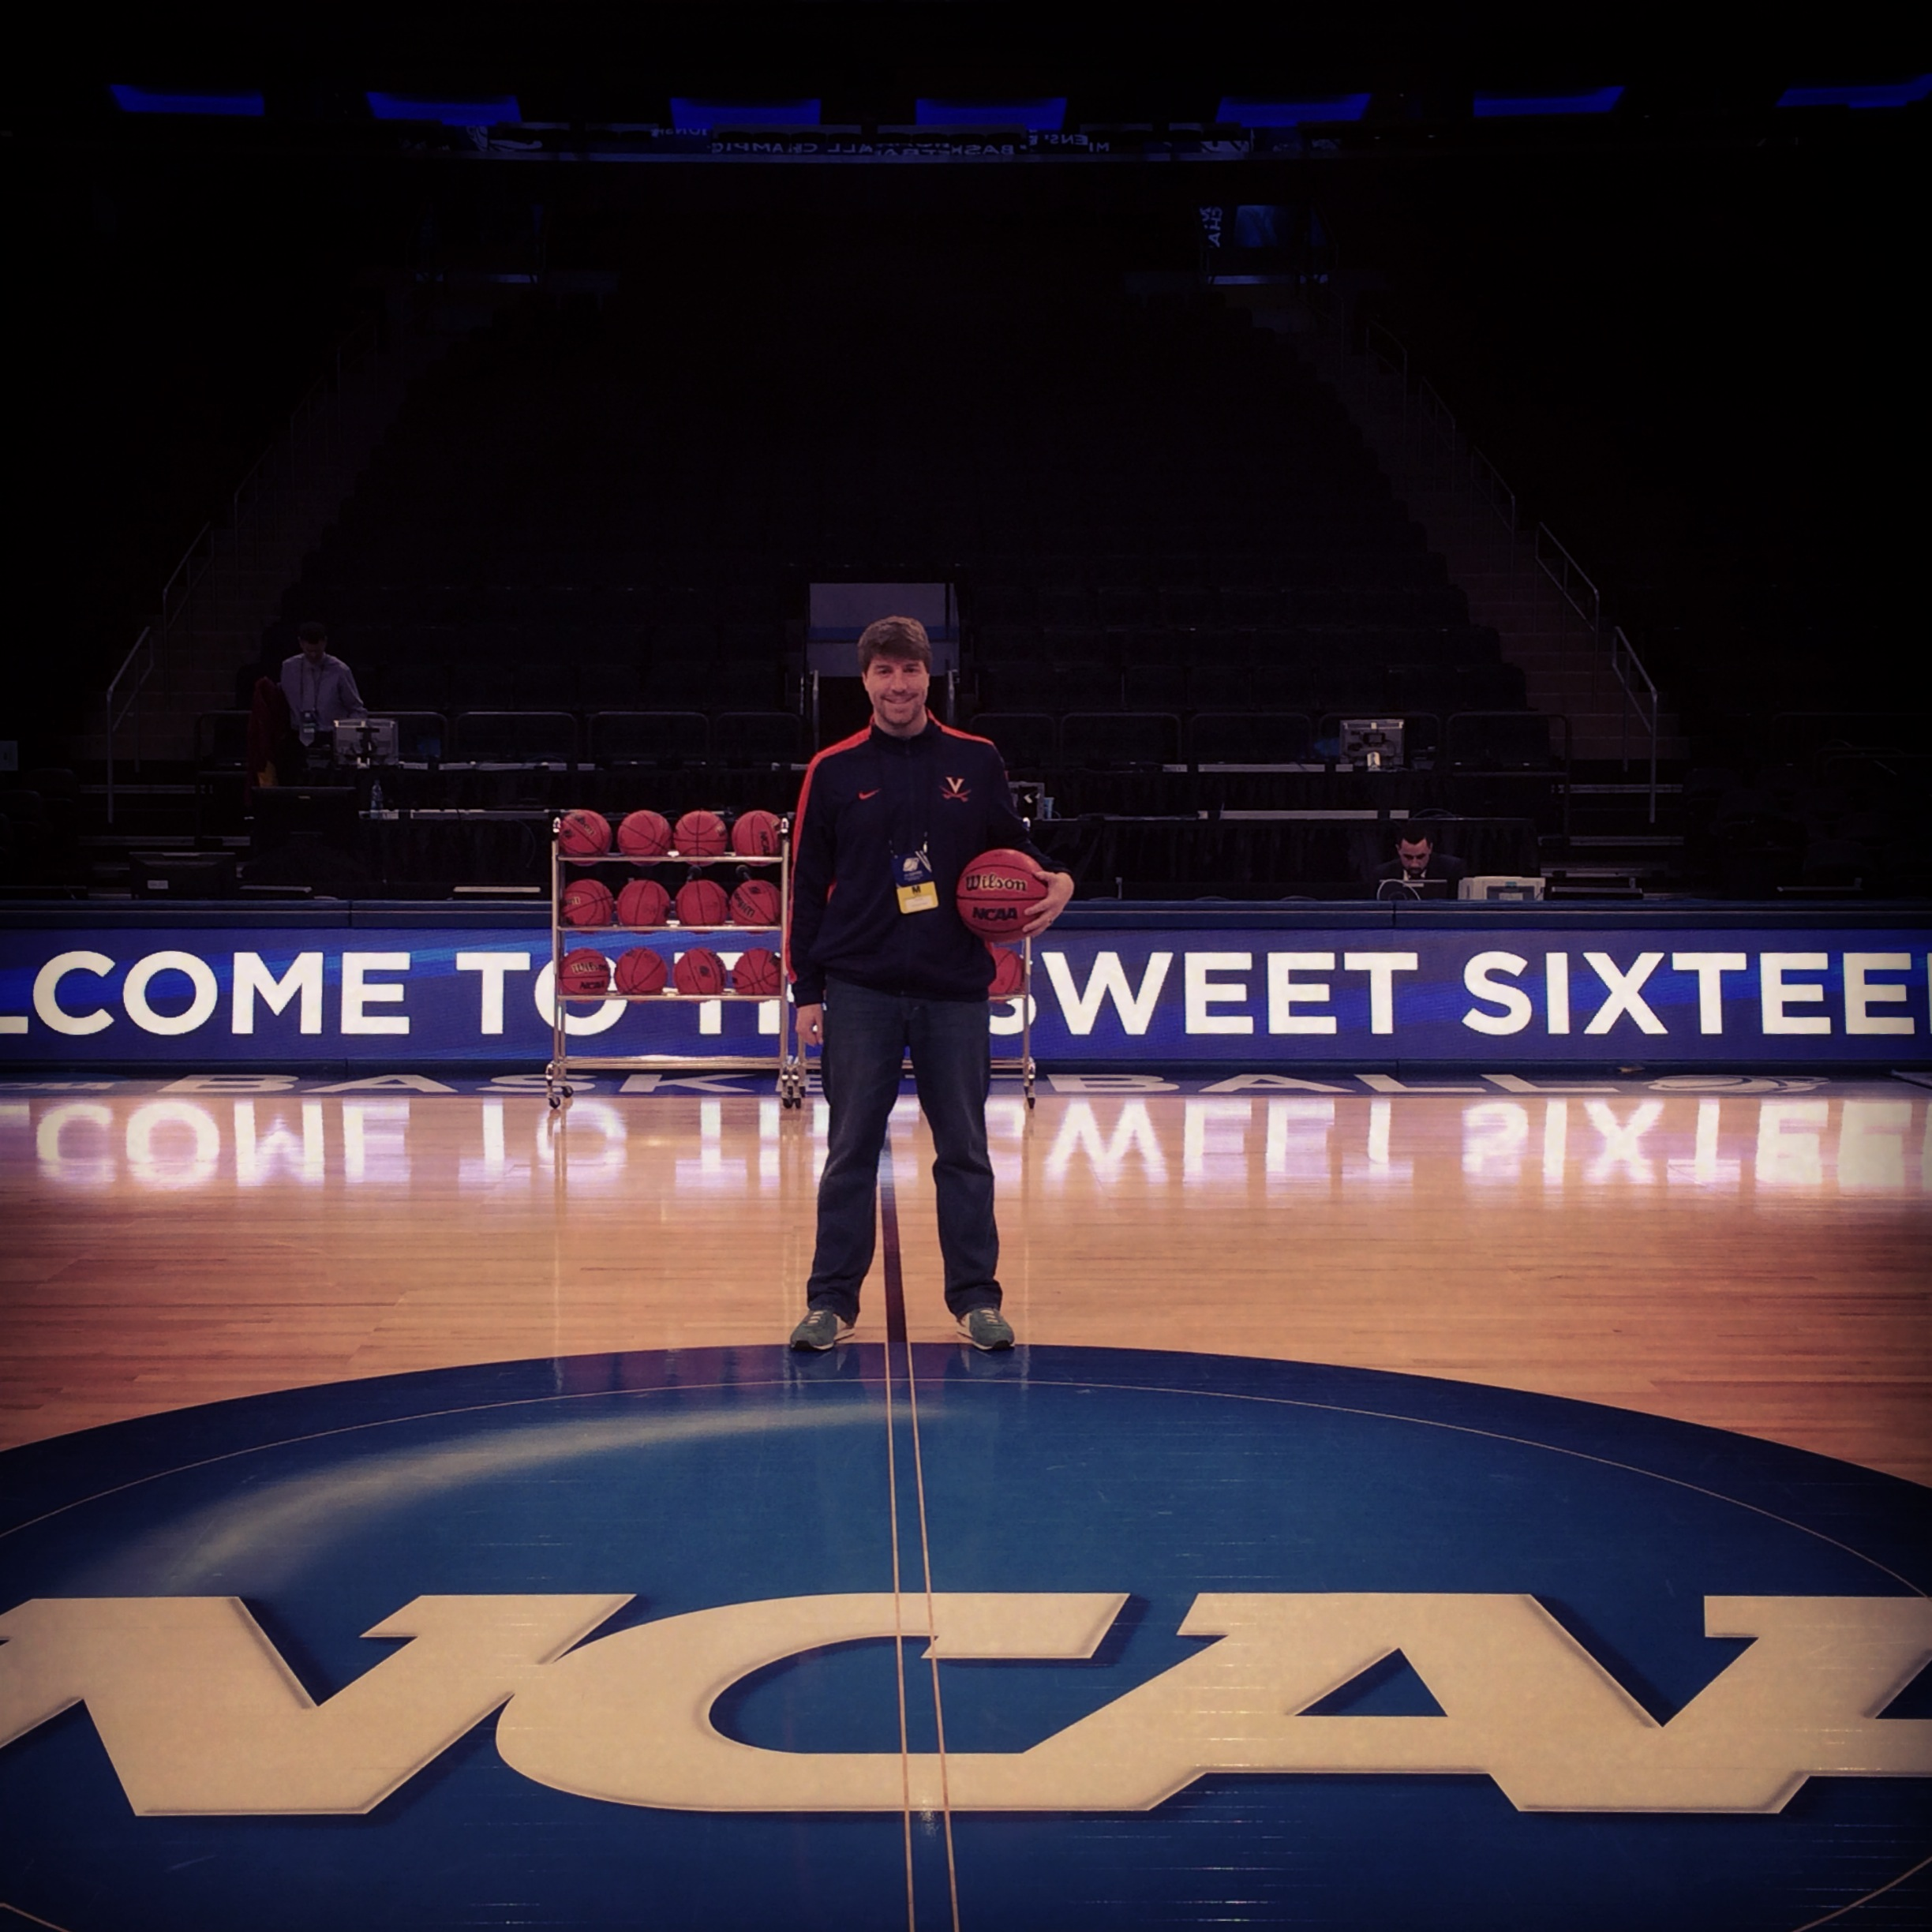 Madison Square Garden for the Sweet Sixteen